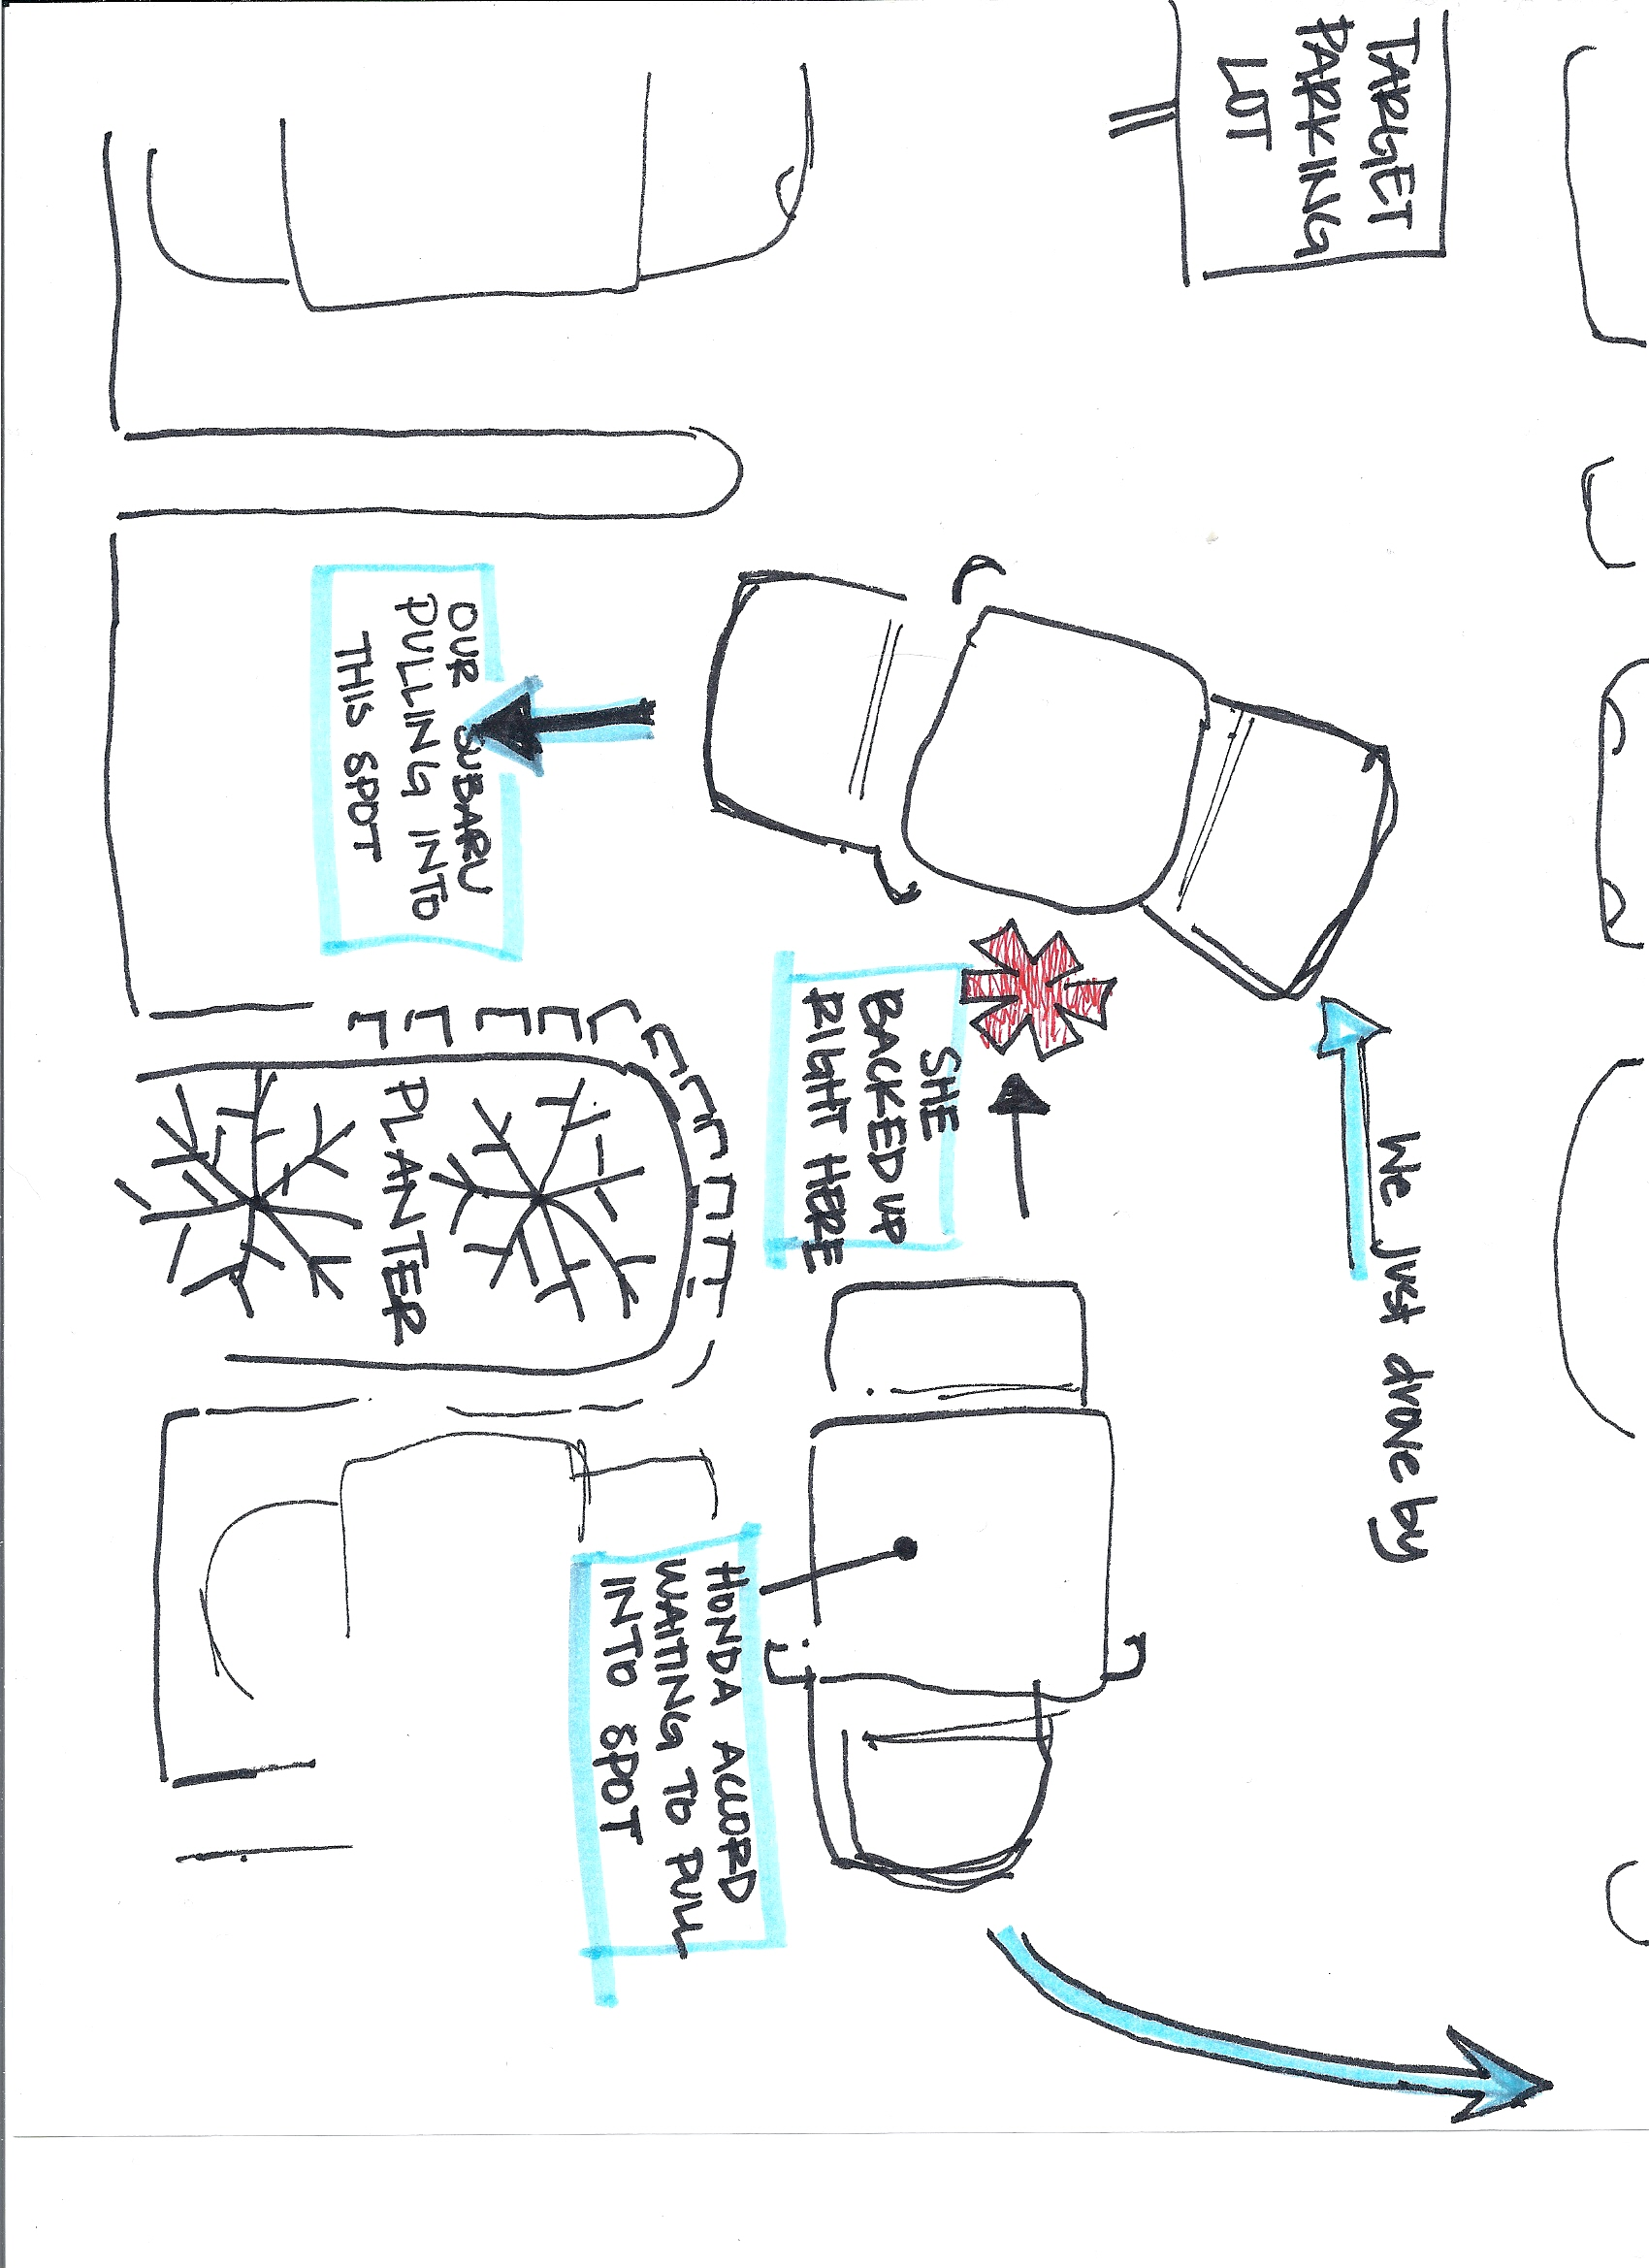 diagram for car accident